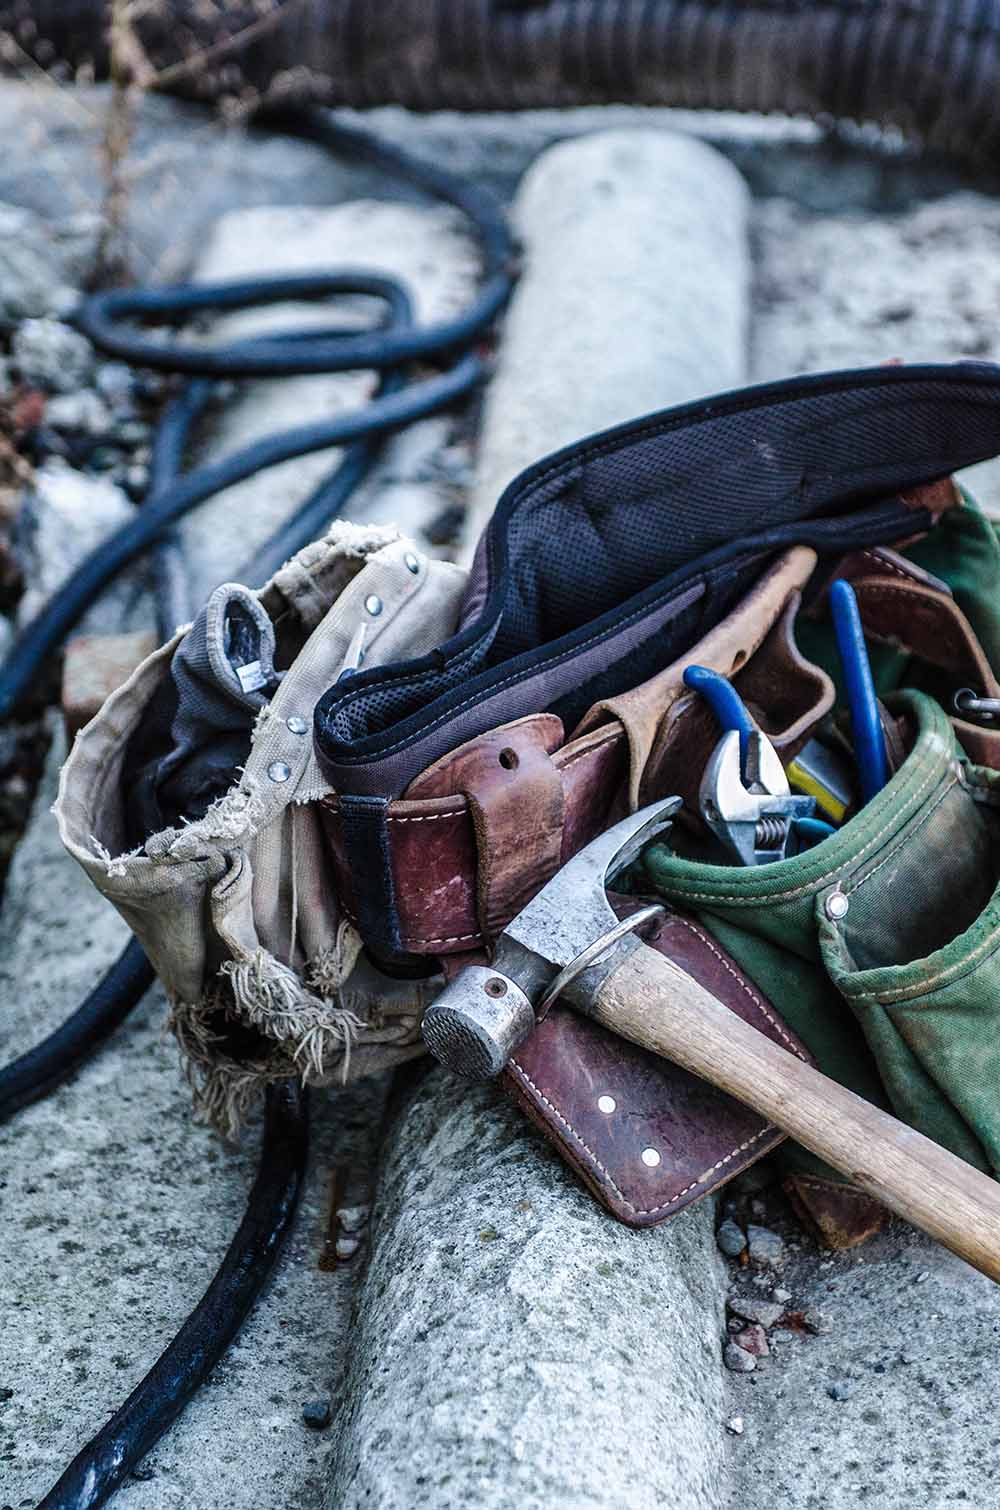 A tool belt full of tools rests on the ground.